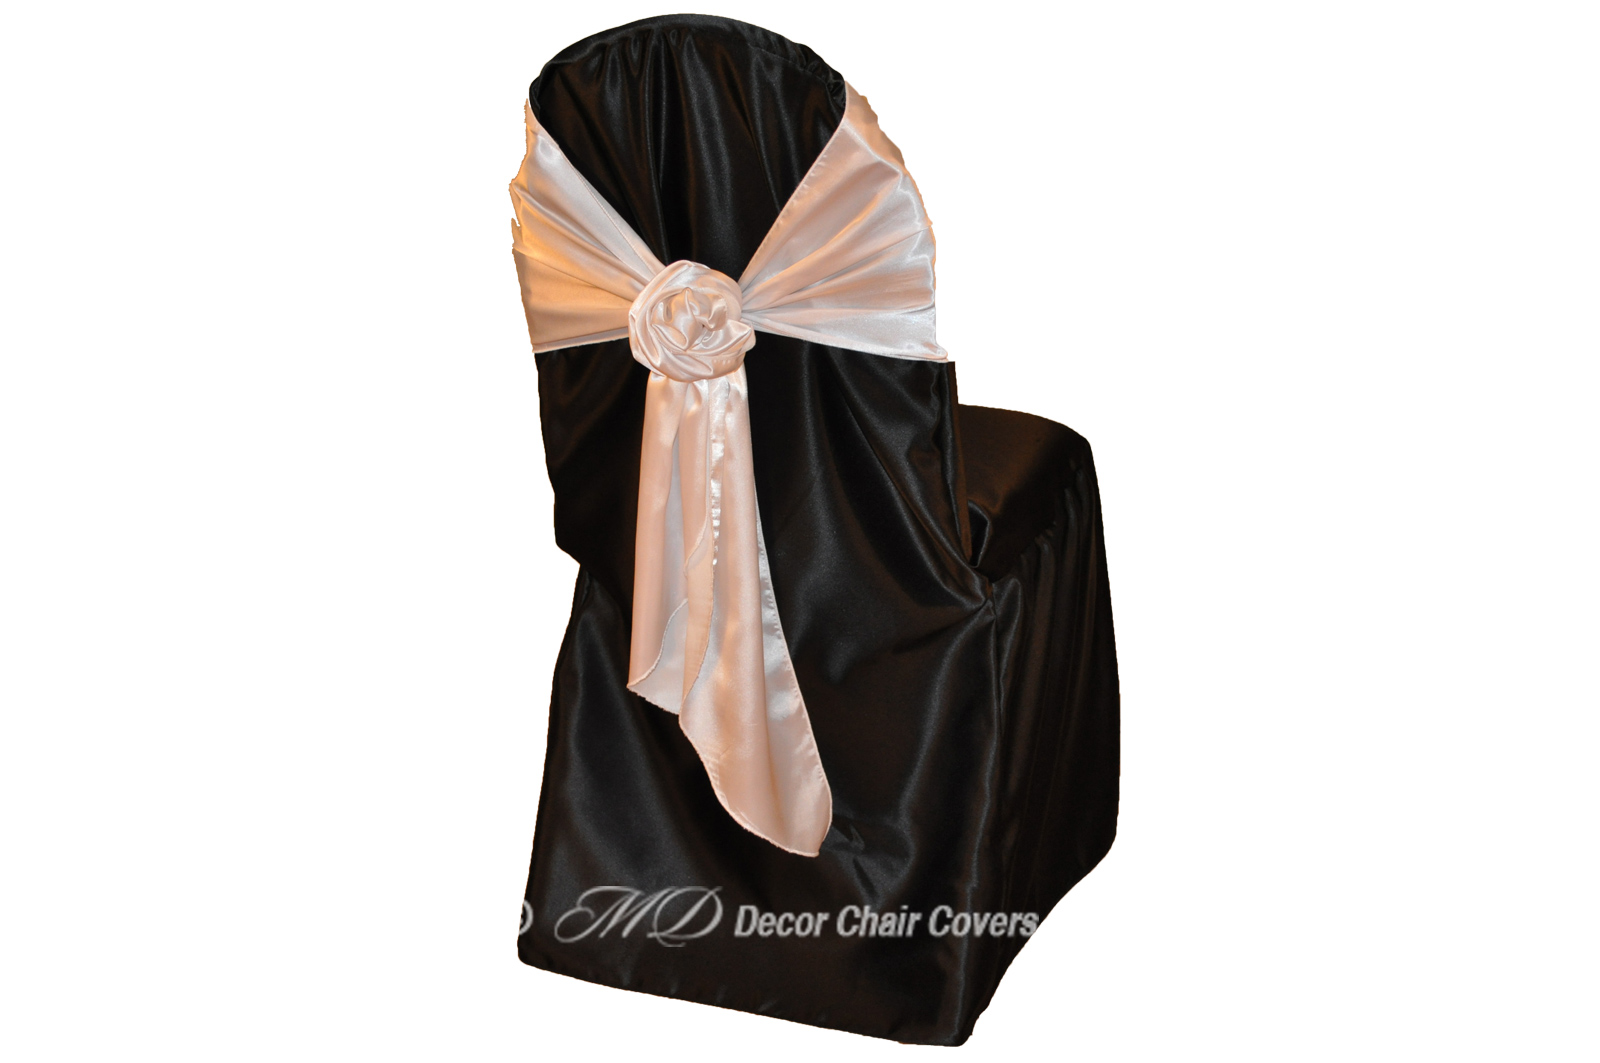 satin chair covers rental naperville il black friday bean bag chairs lamour cover md decor party rentals